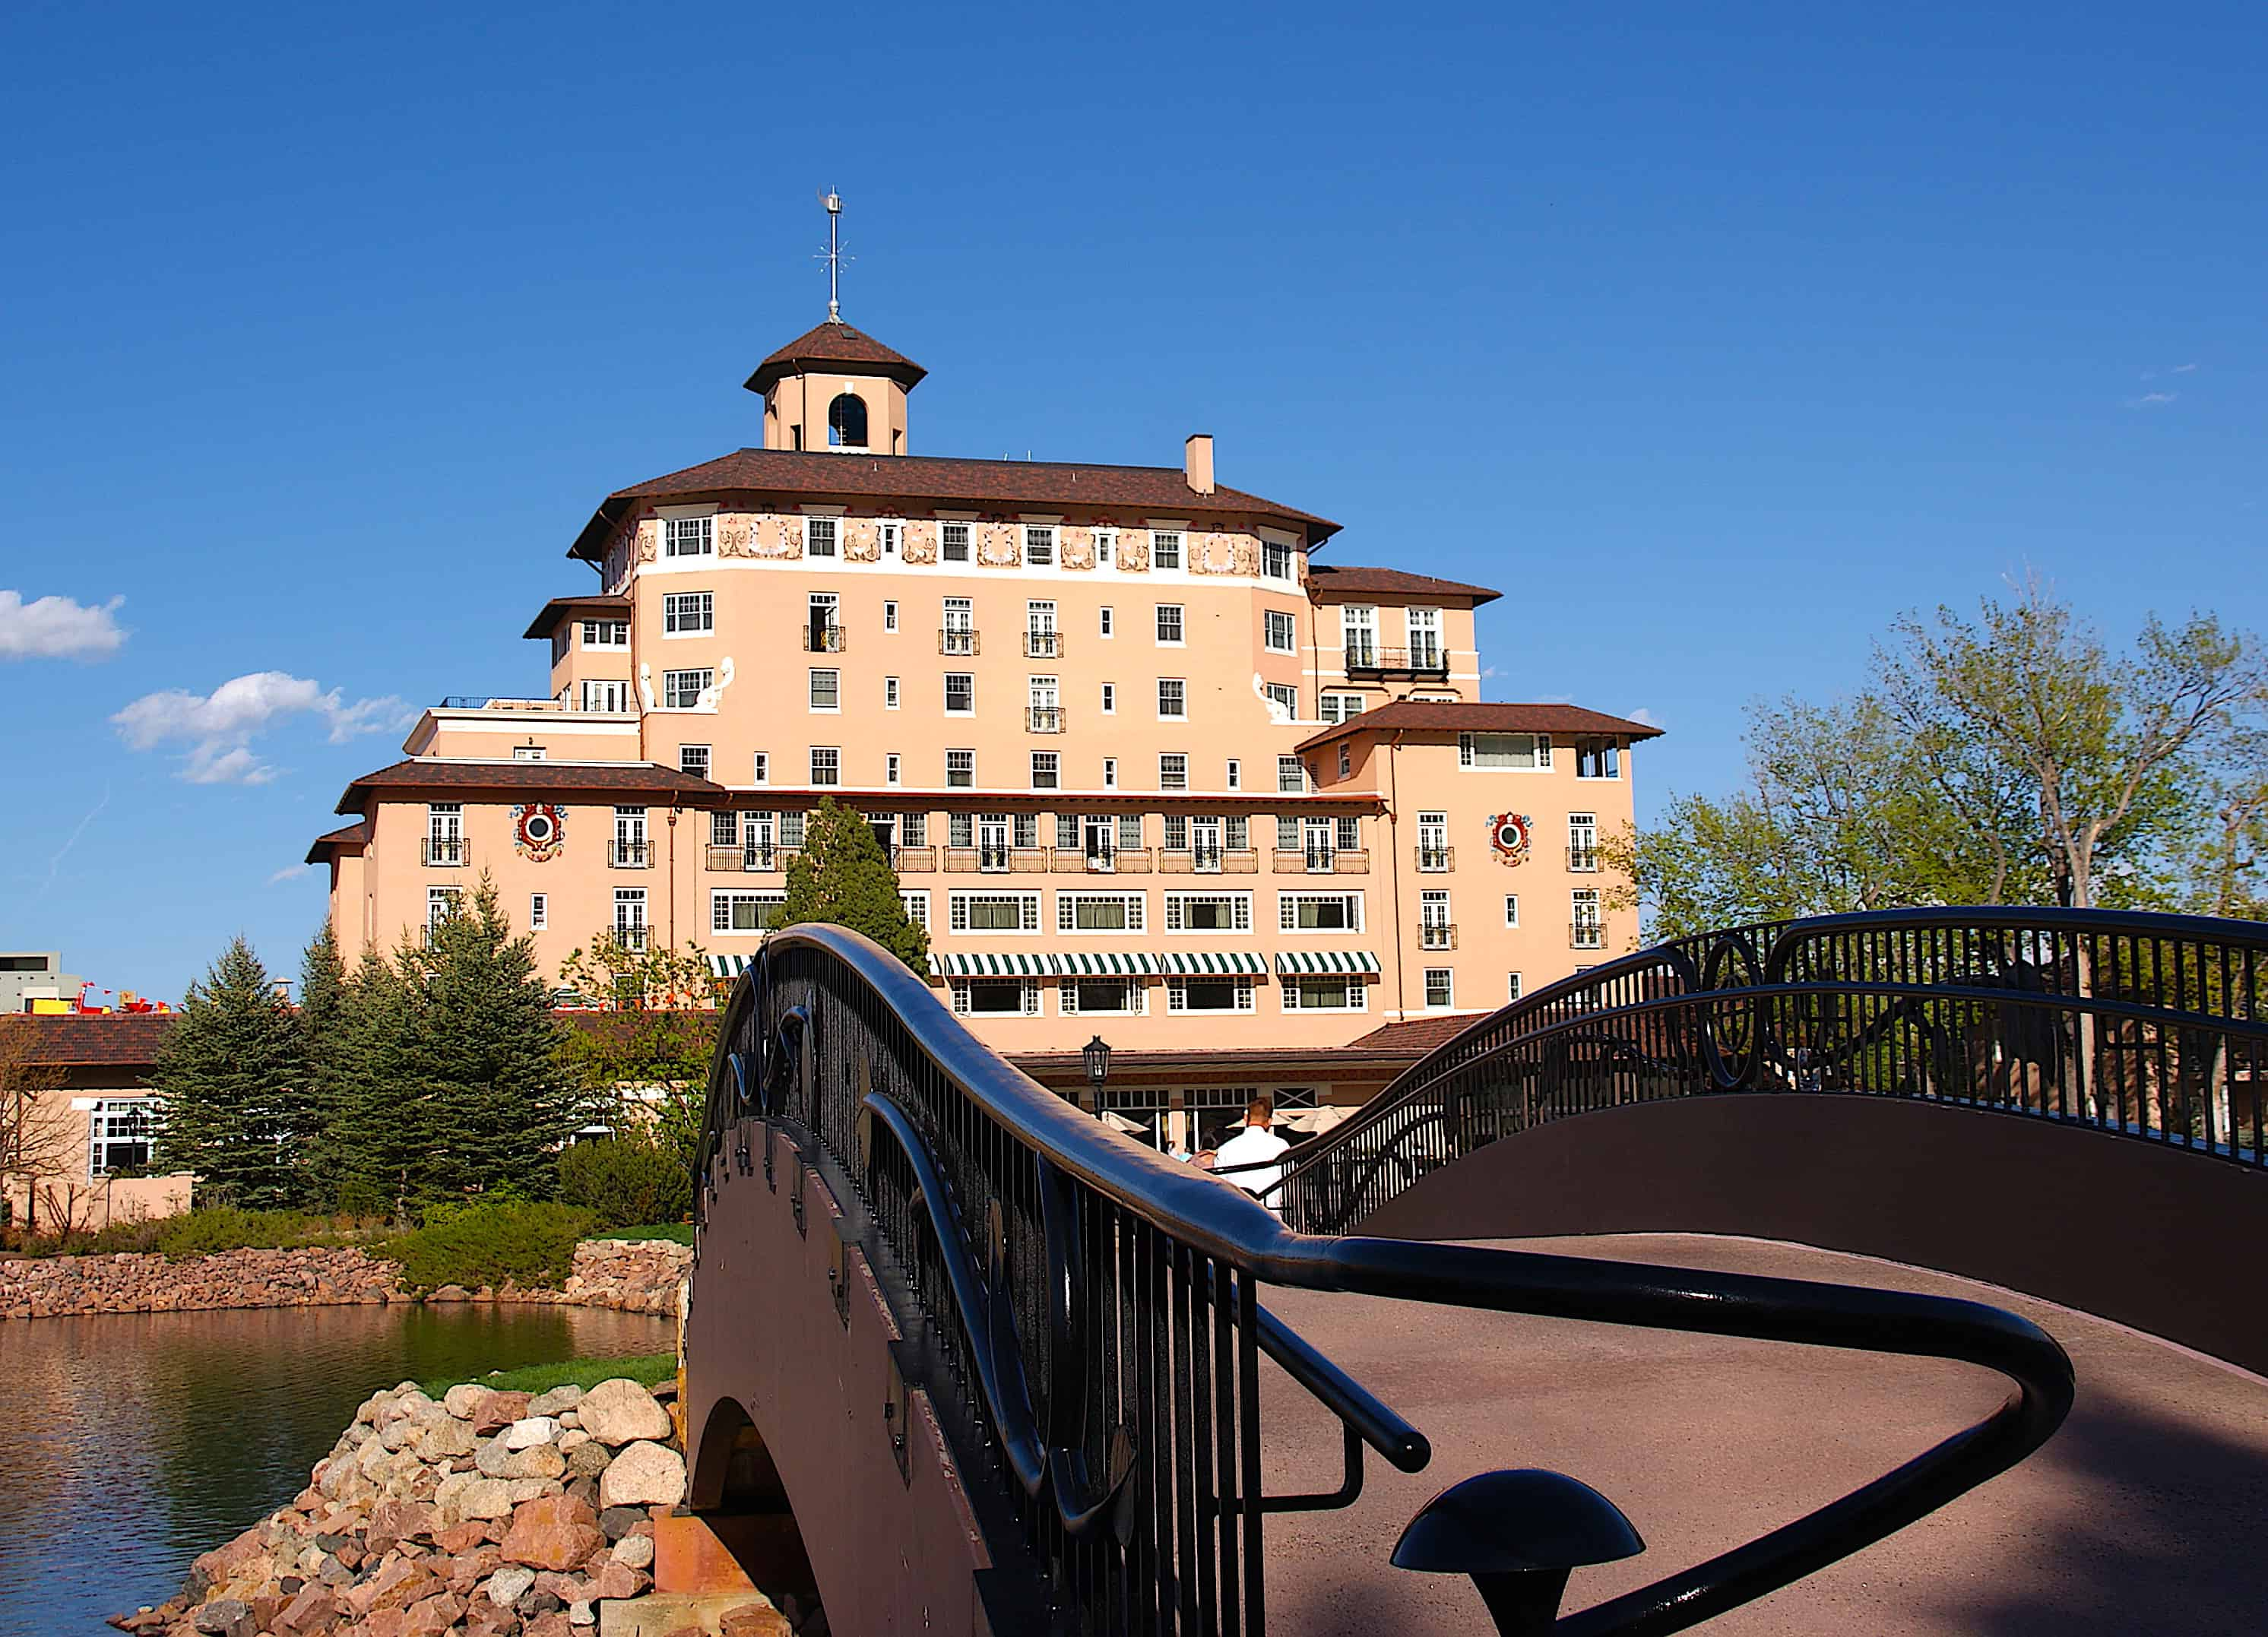 Looking at the Broadmoor hotel in Colorado Springs from across the foot bridge.